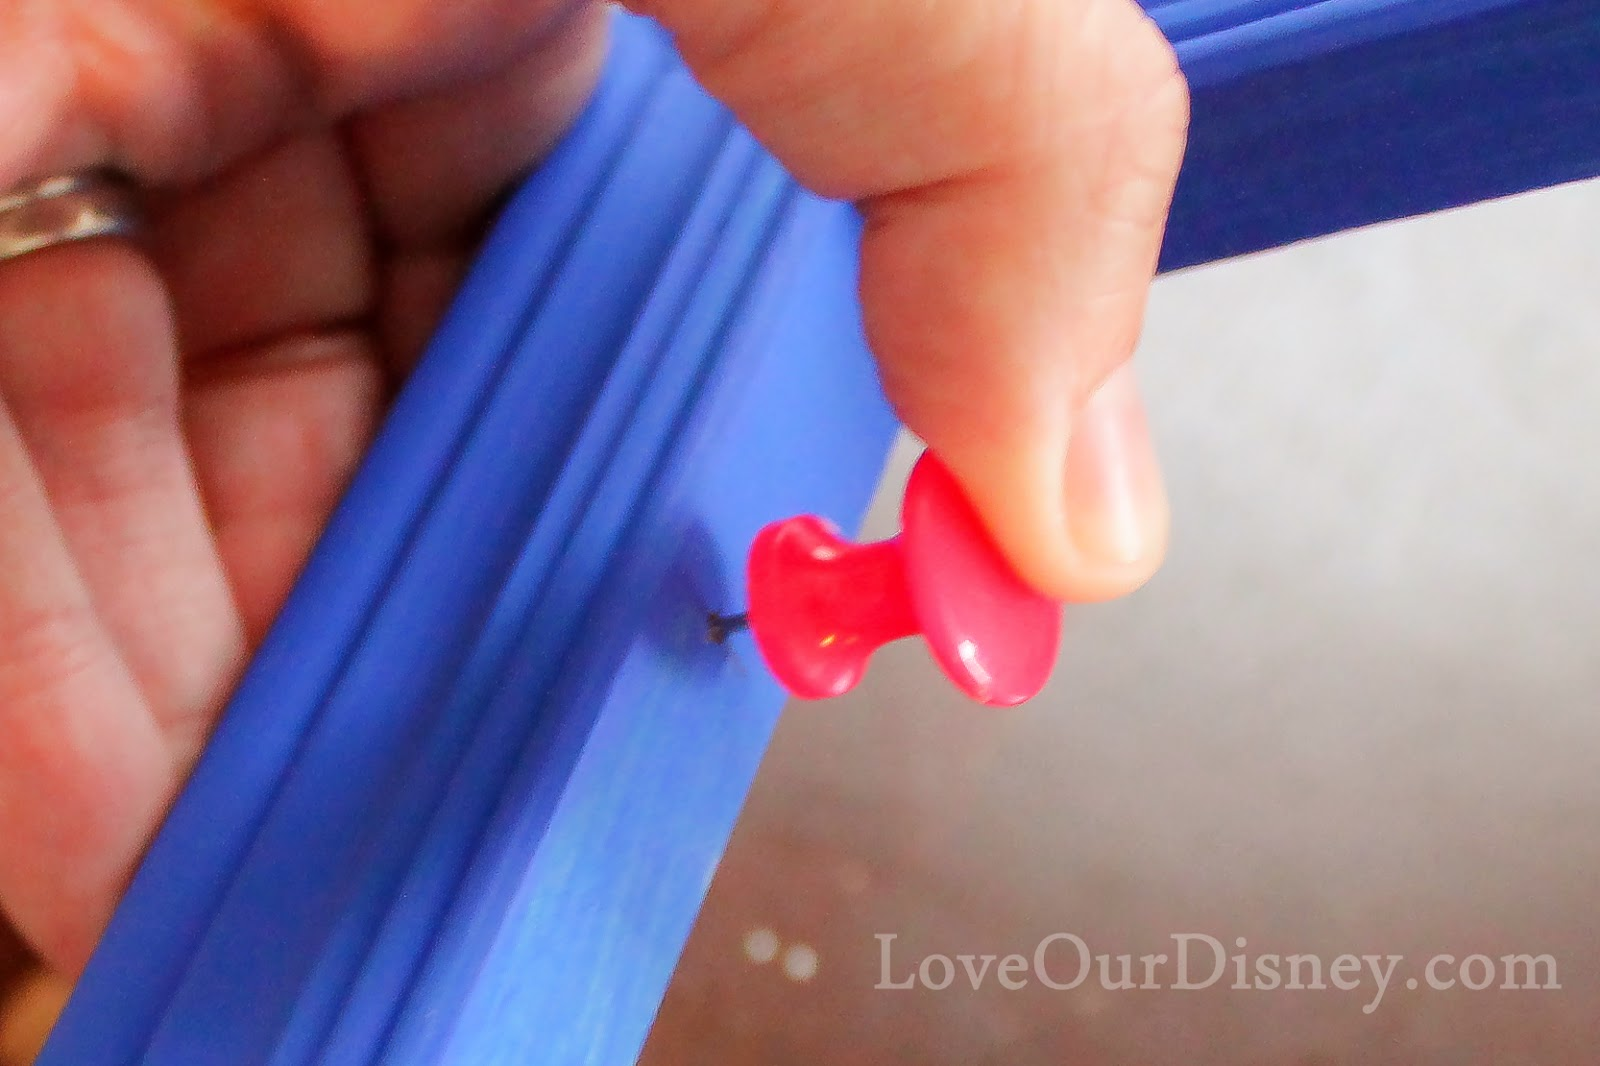 Making a Clothesline Photo Display from LoveOurDisney.com